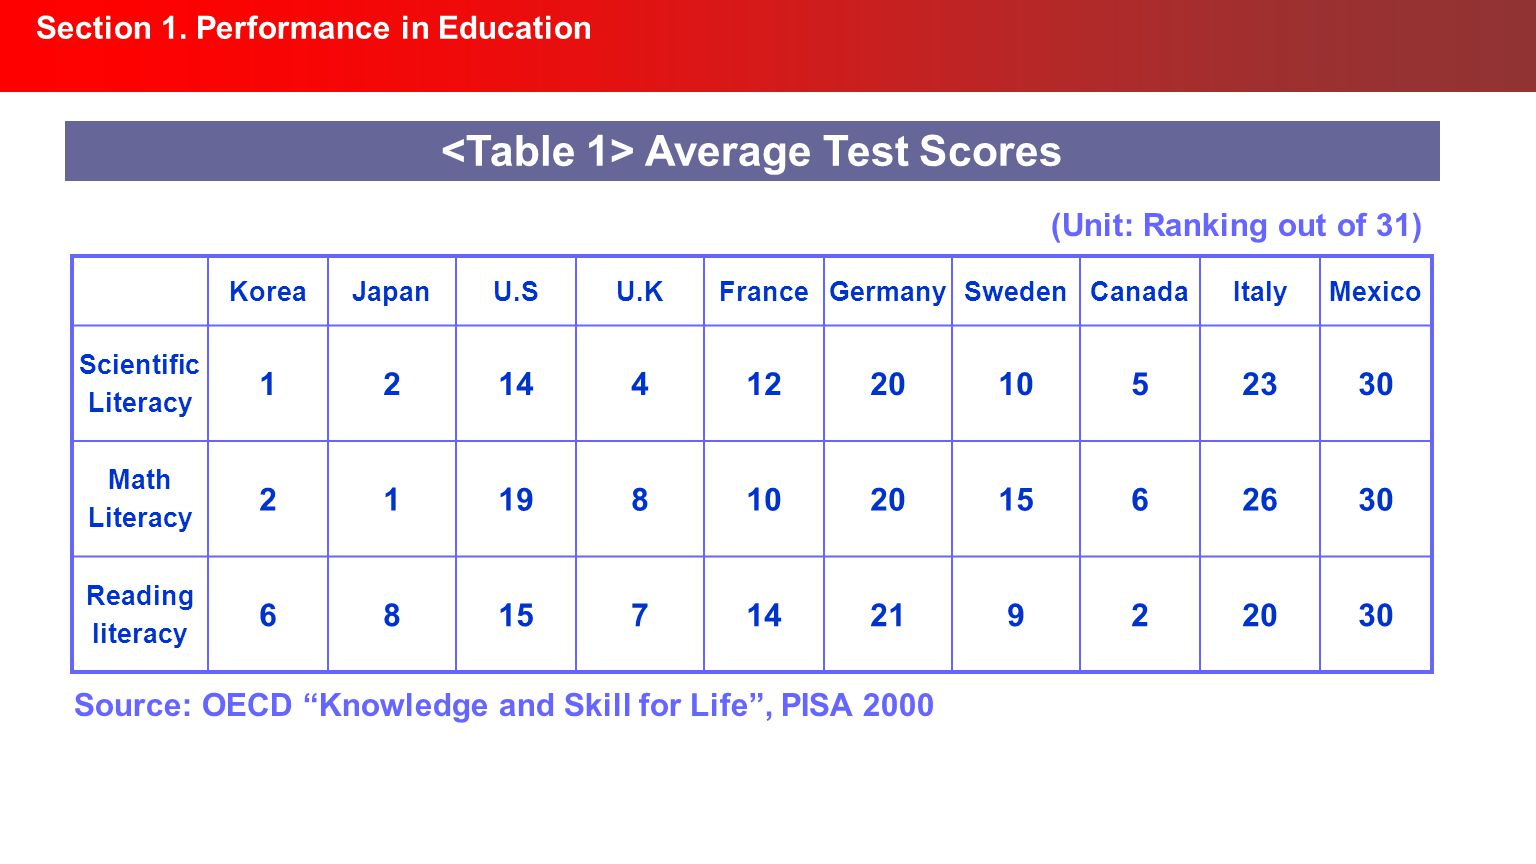 Section 1. Performance in Education Average Test Scores KoreaJapanU.SU.KFranceGermanySwedenCanadaItalyMexico Scientific Literacy 1214412201052330 Math